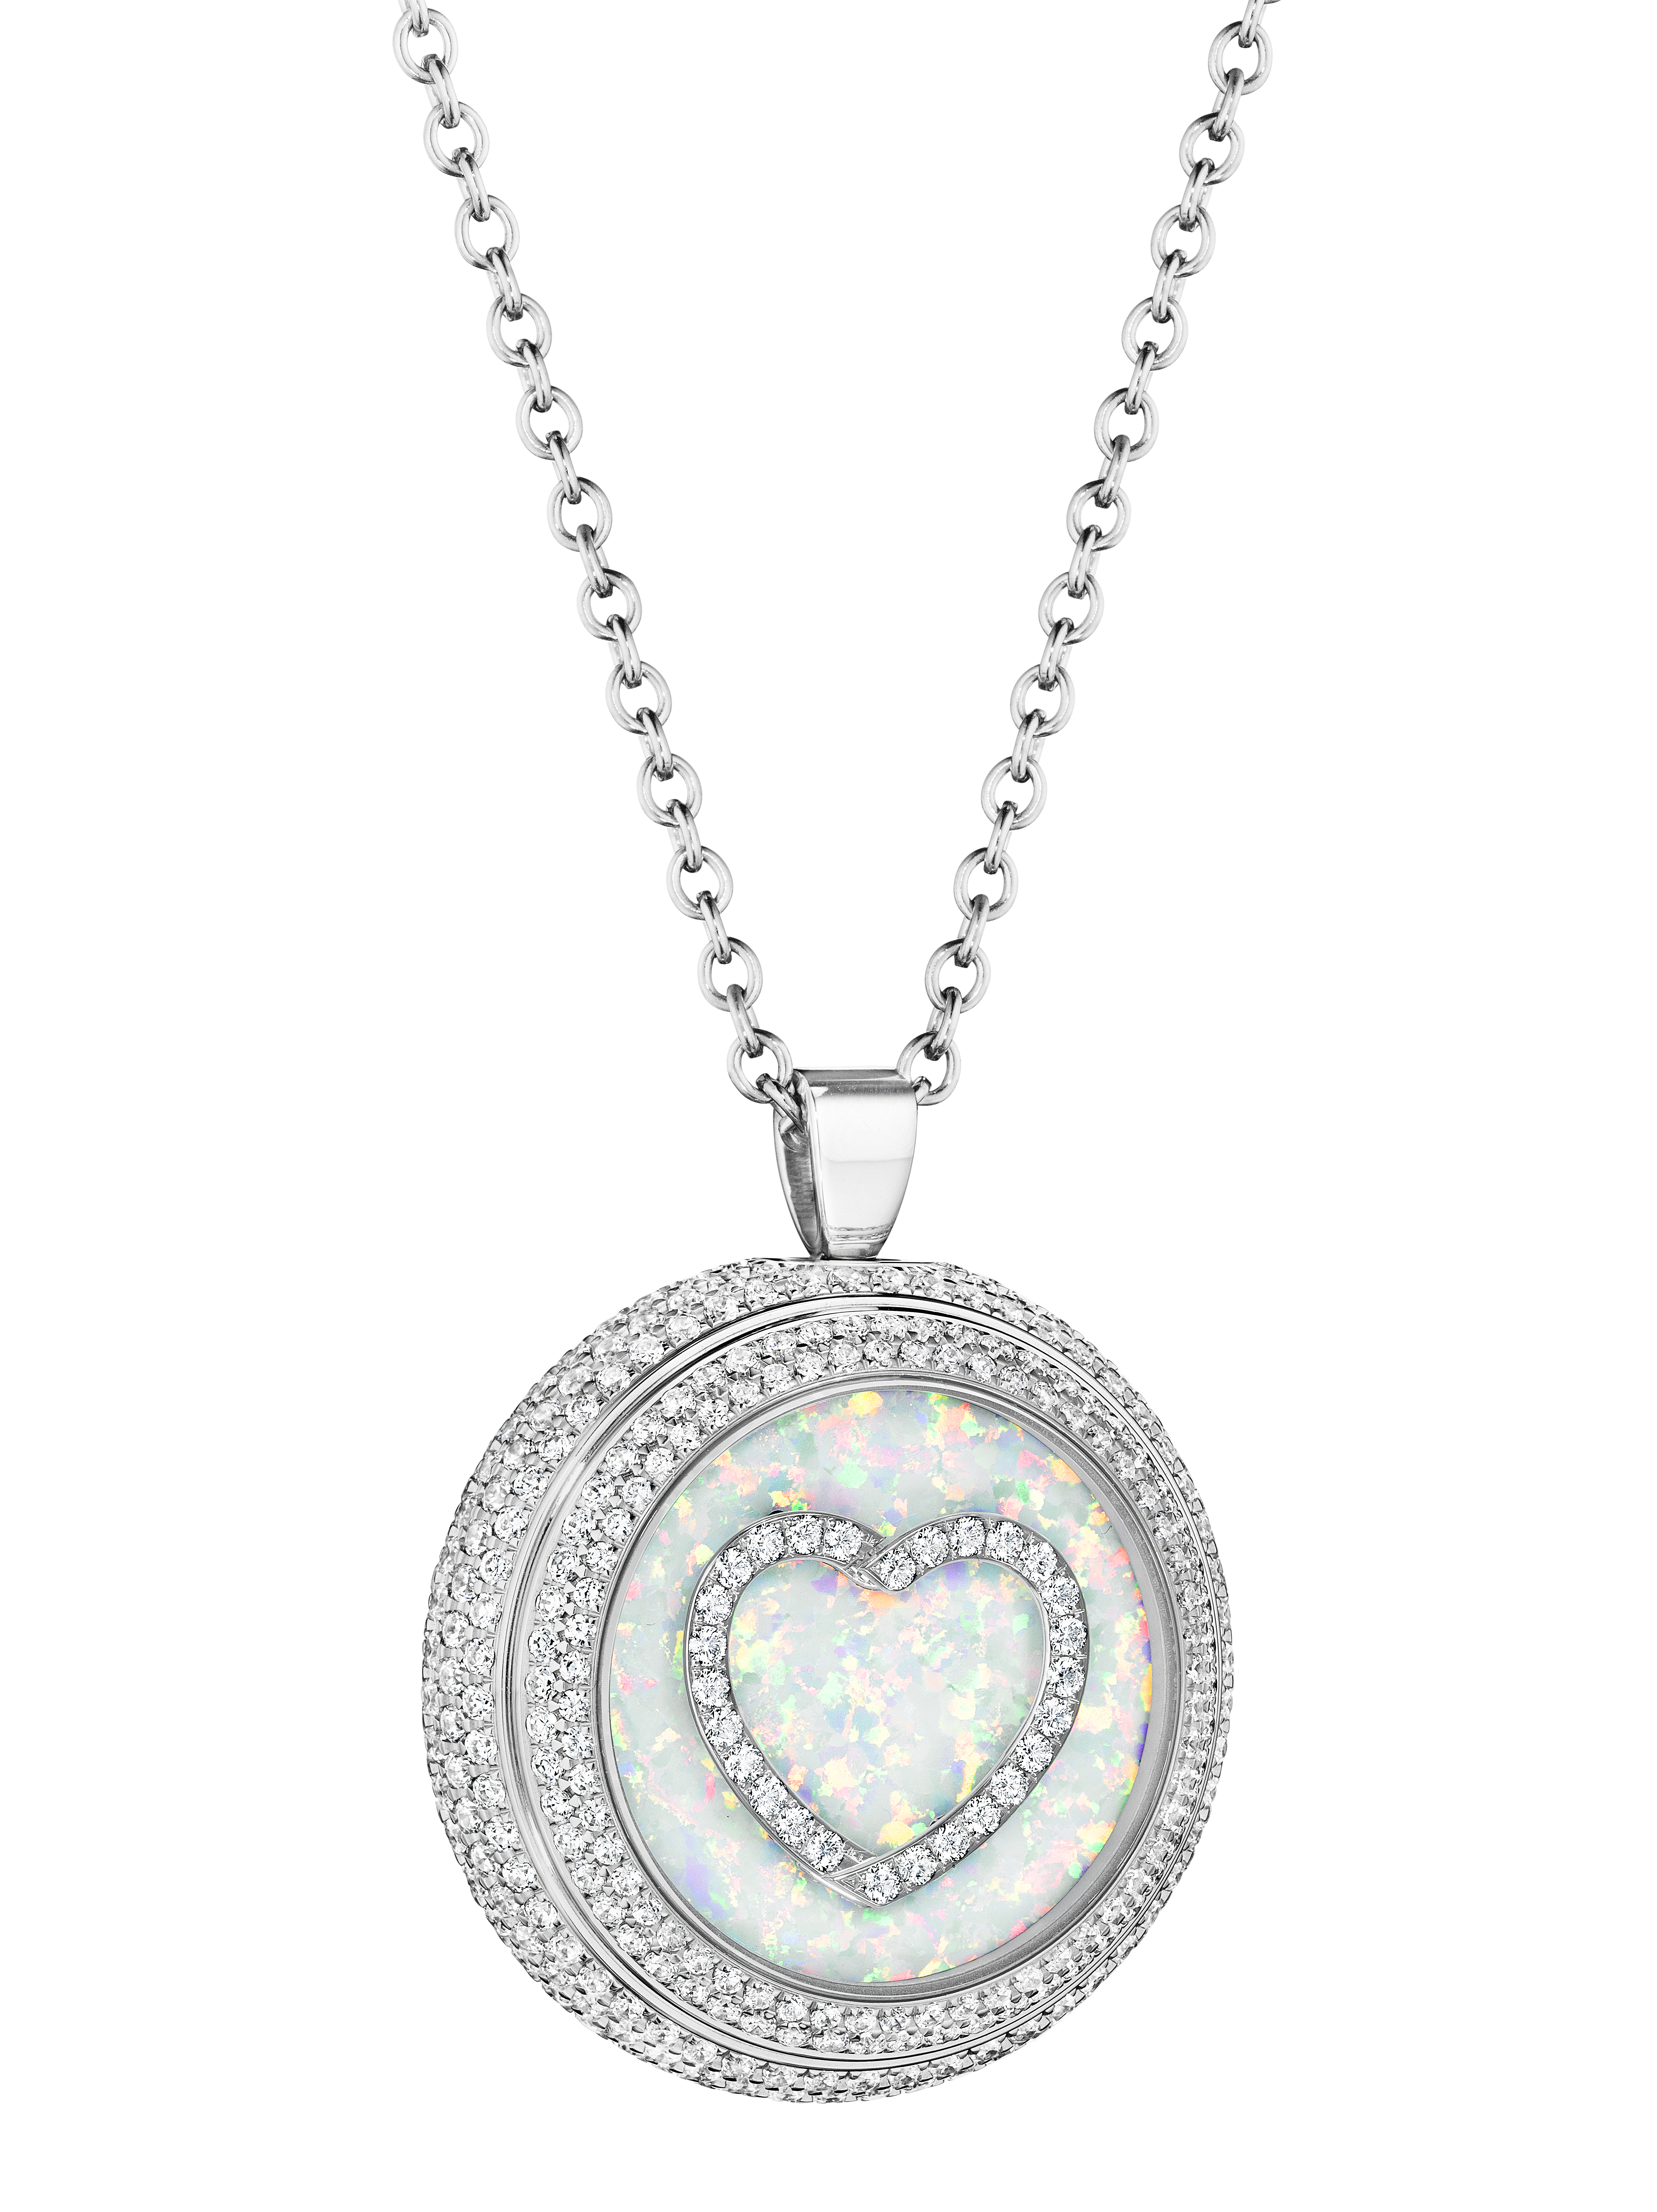 Each Heart's Passion watch is crafted of the finest materials, including precious stones and diamonds.